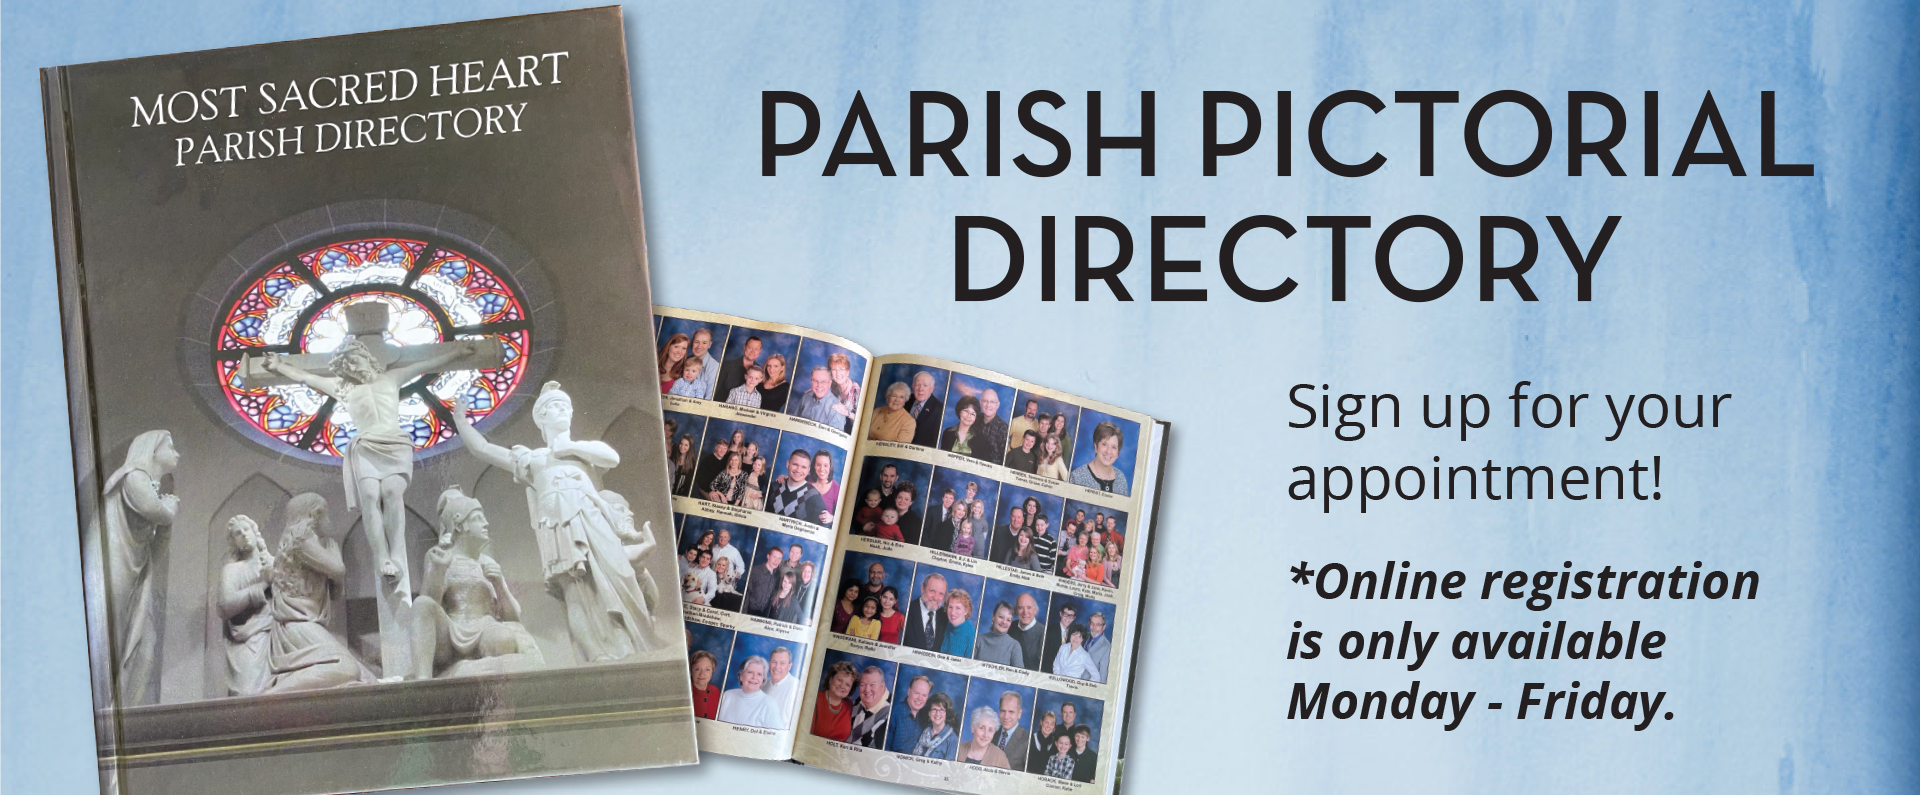 Sign up for your parish pictorial directory photos